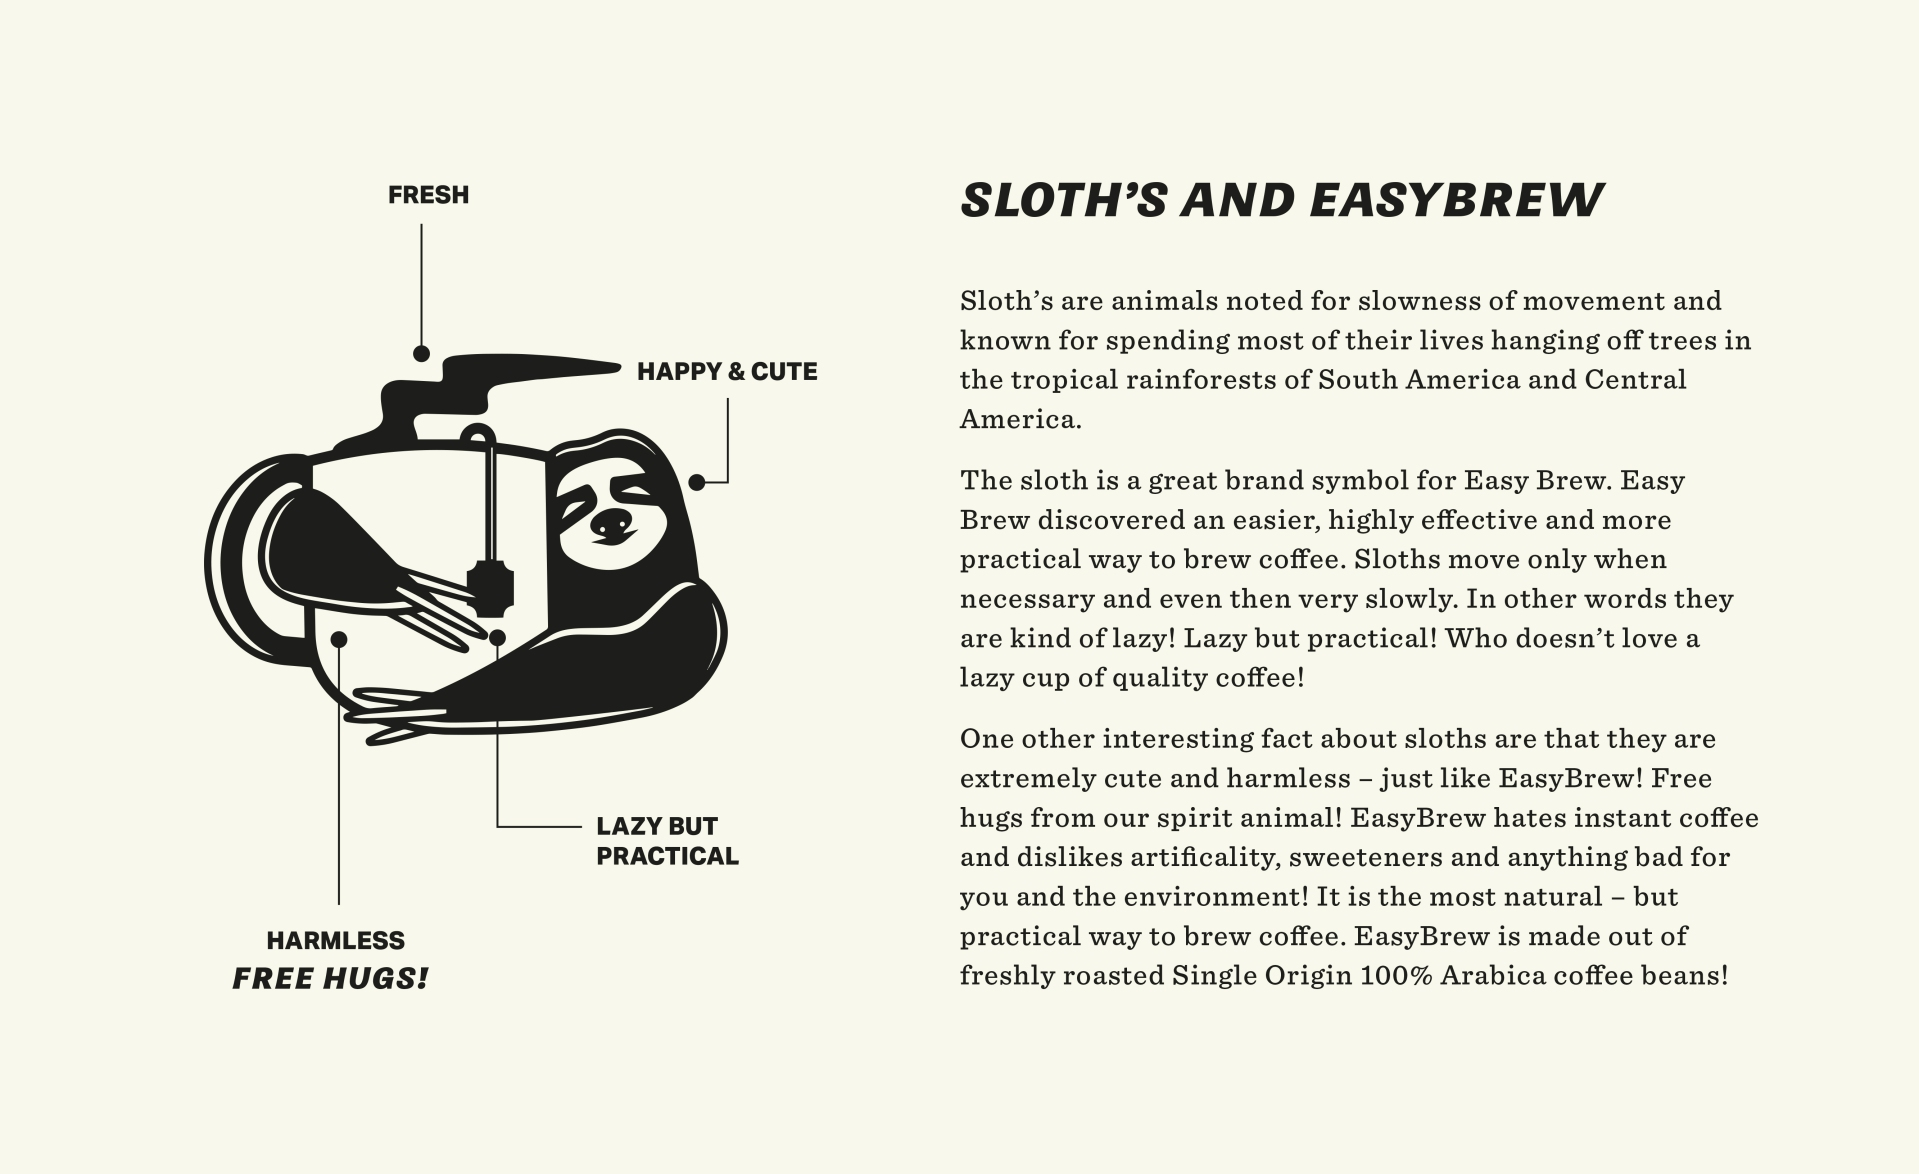 sloth-easy-brew-coffee-website-easybrew-packaging-zeki-michael-pinterest-coffee-beer-label-branding-strategy-design-practical-studio-freelance